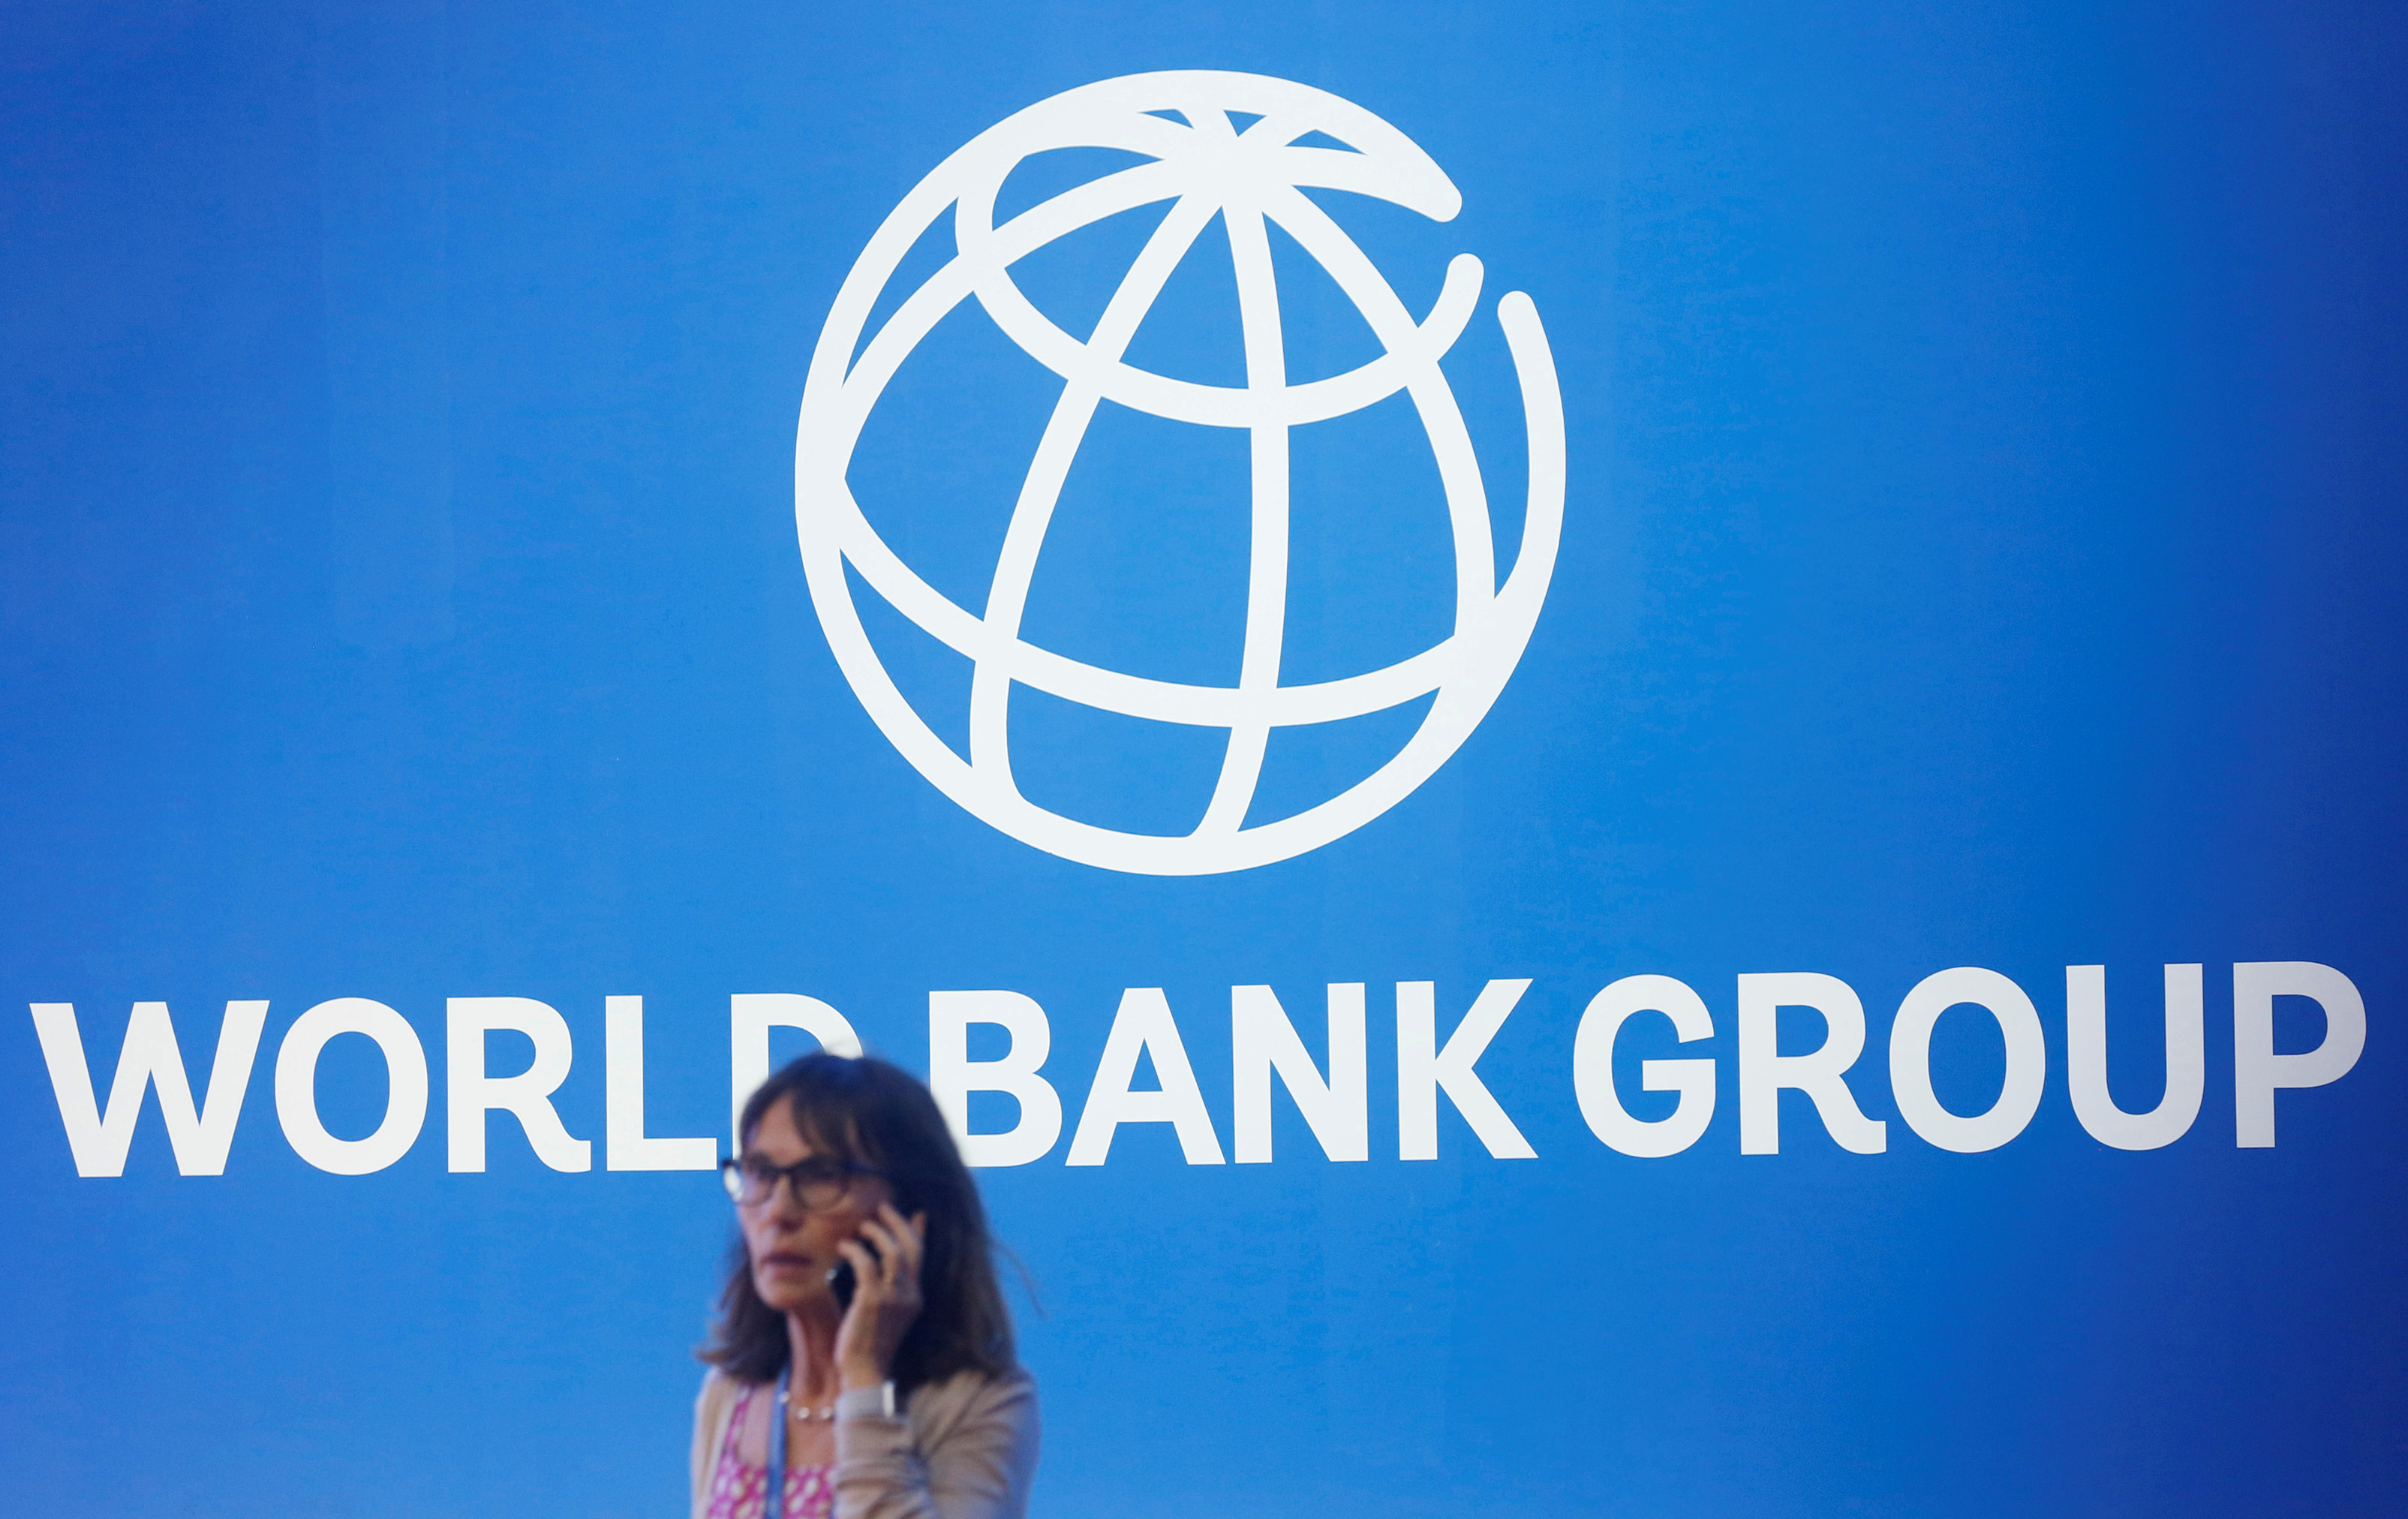 A participant stands near a logo of World Bank at the International Monetary Fund - World Bank Annual Meeting 2018 in Nusa Dua, Bali, Indonesia, October 12, 2018. REUTERS/Johannes P. Christo/File Photo